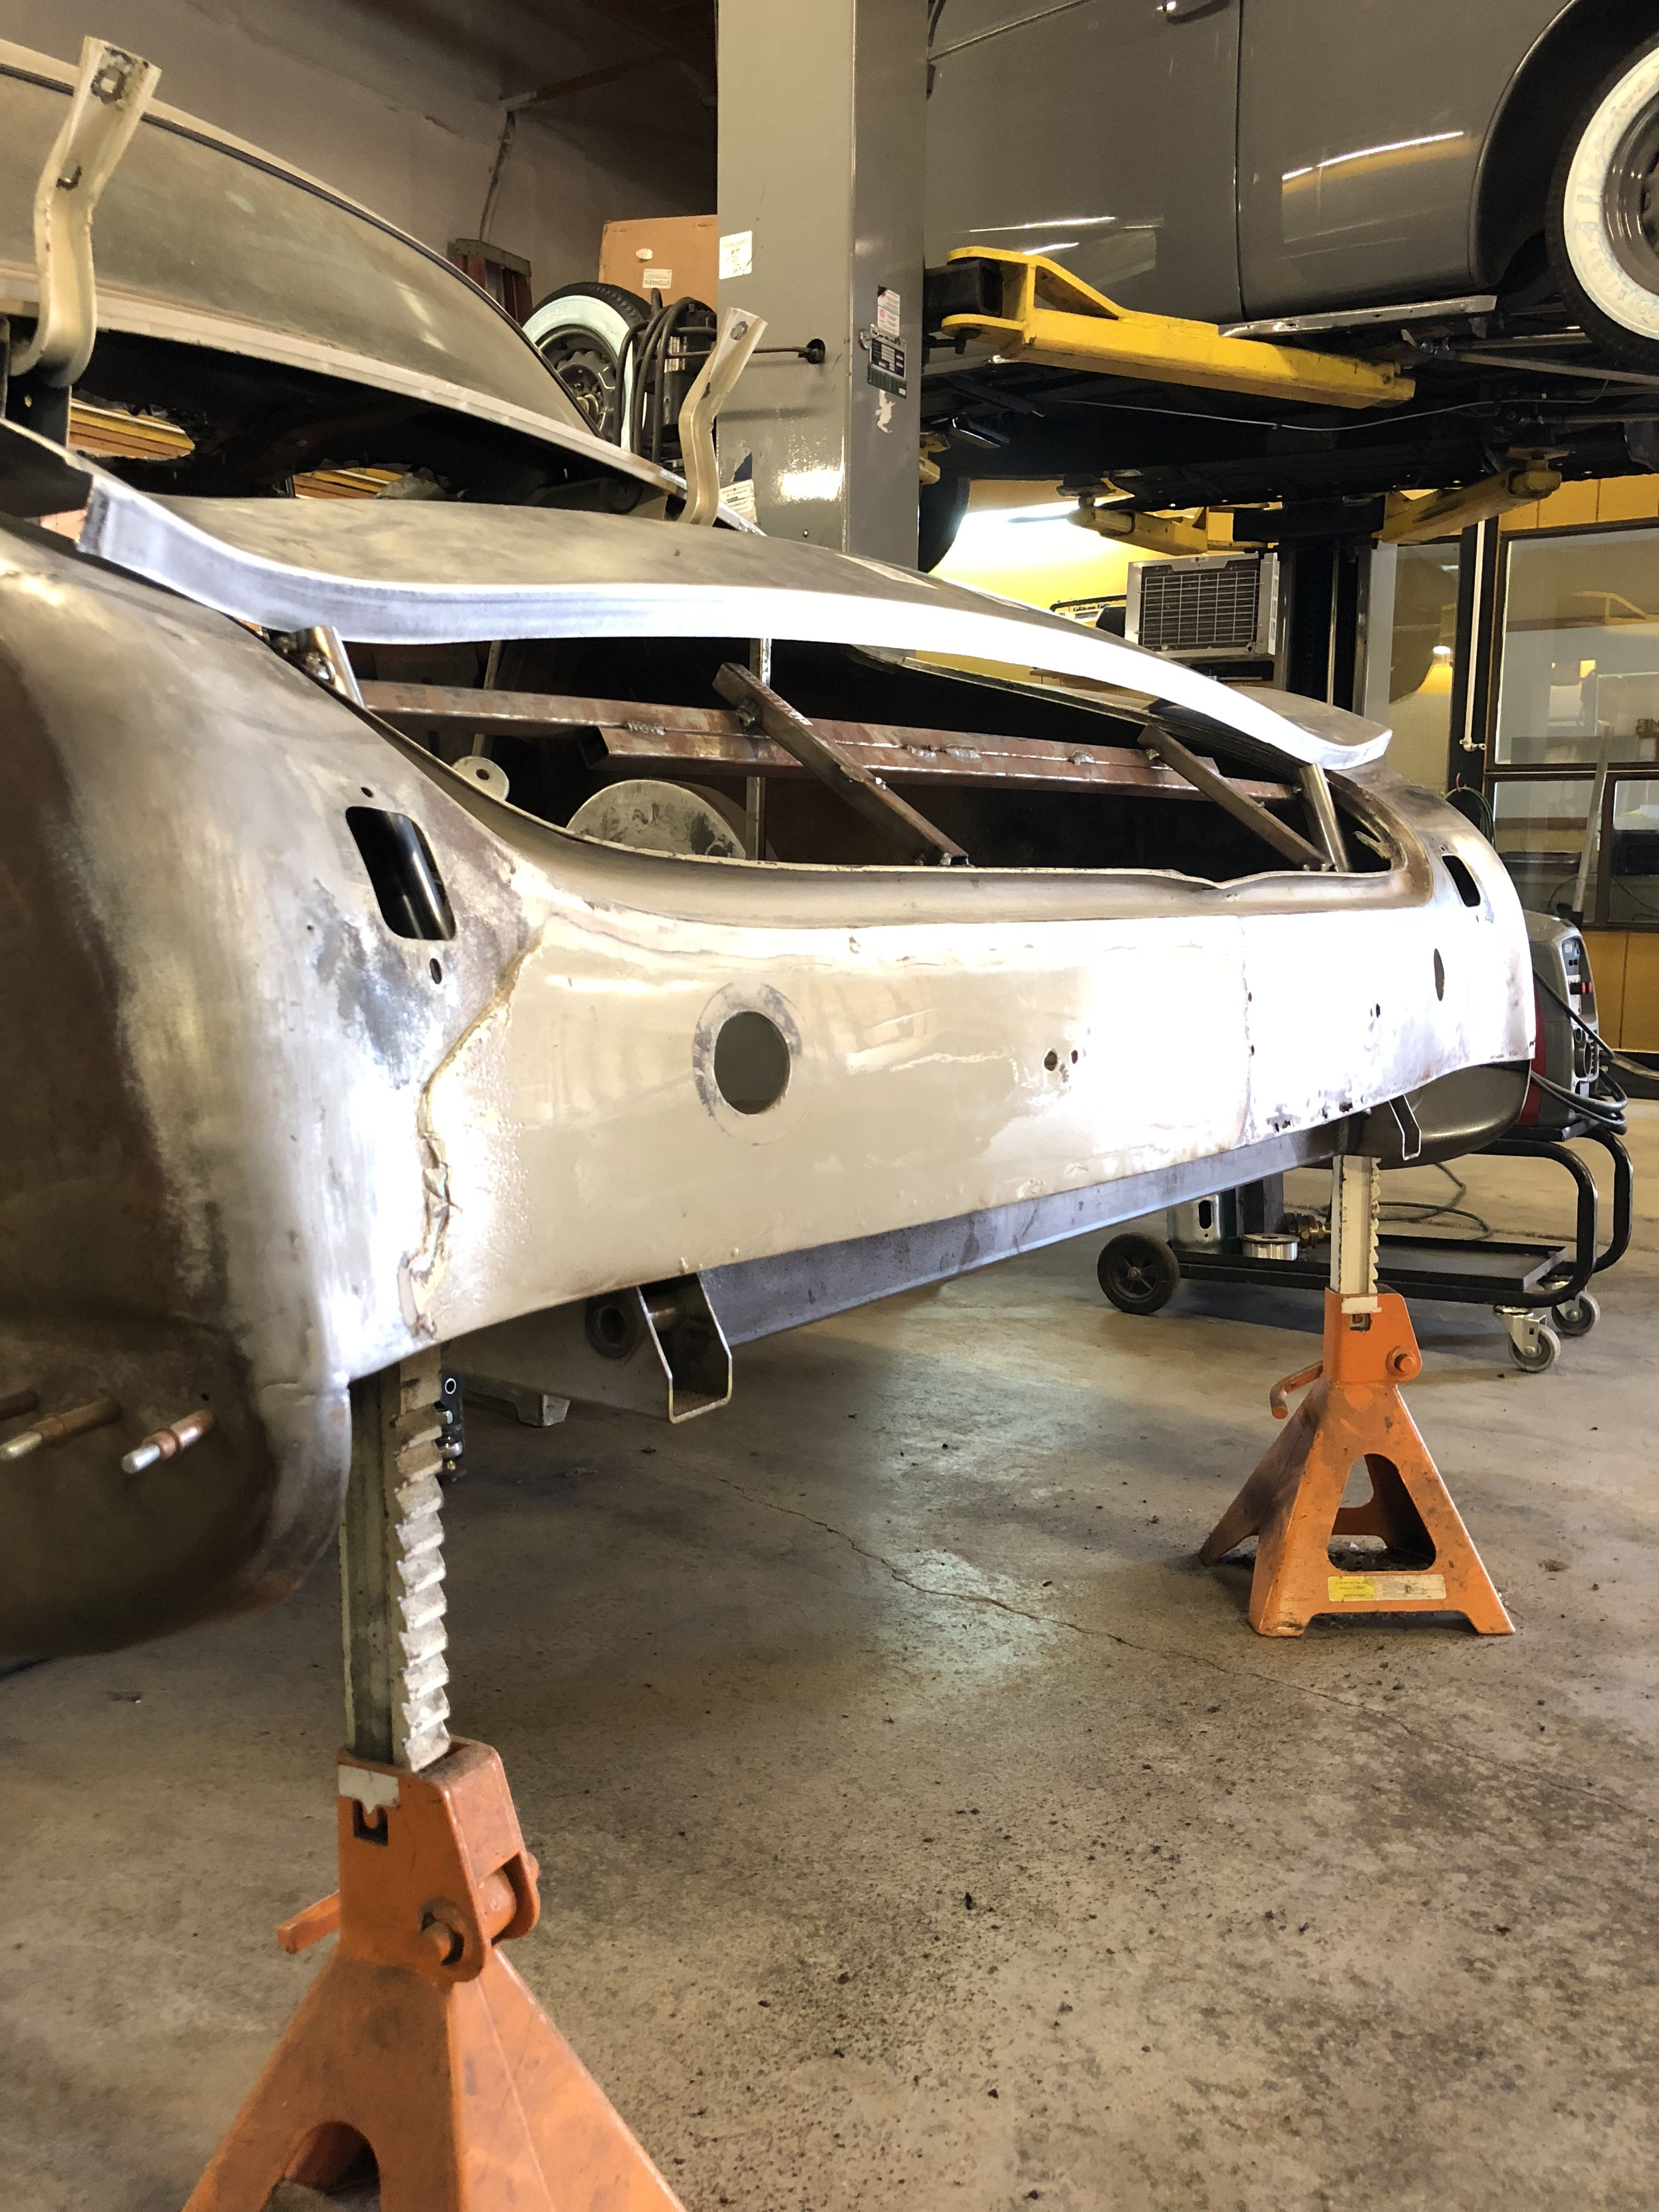 Pin By Ramiro Morales On From Day 1 And Counting 1950 Chevy Coupe Metal Fabrication Sheet Metal Fighter Jets